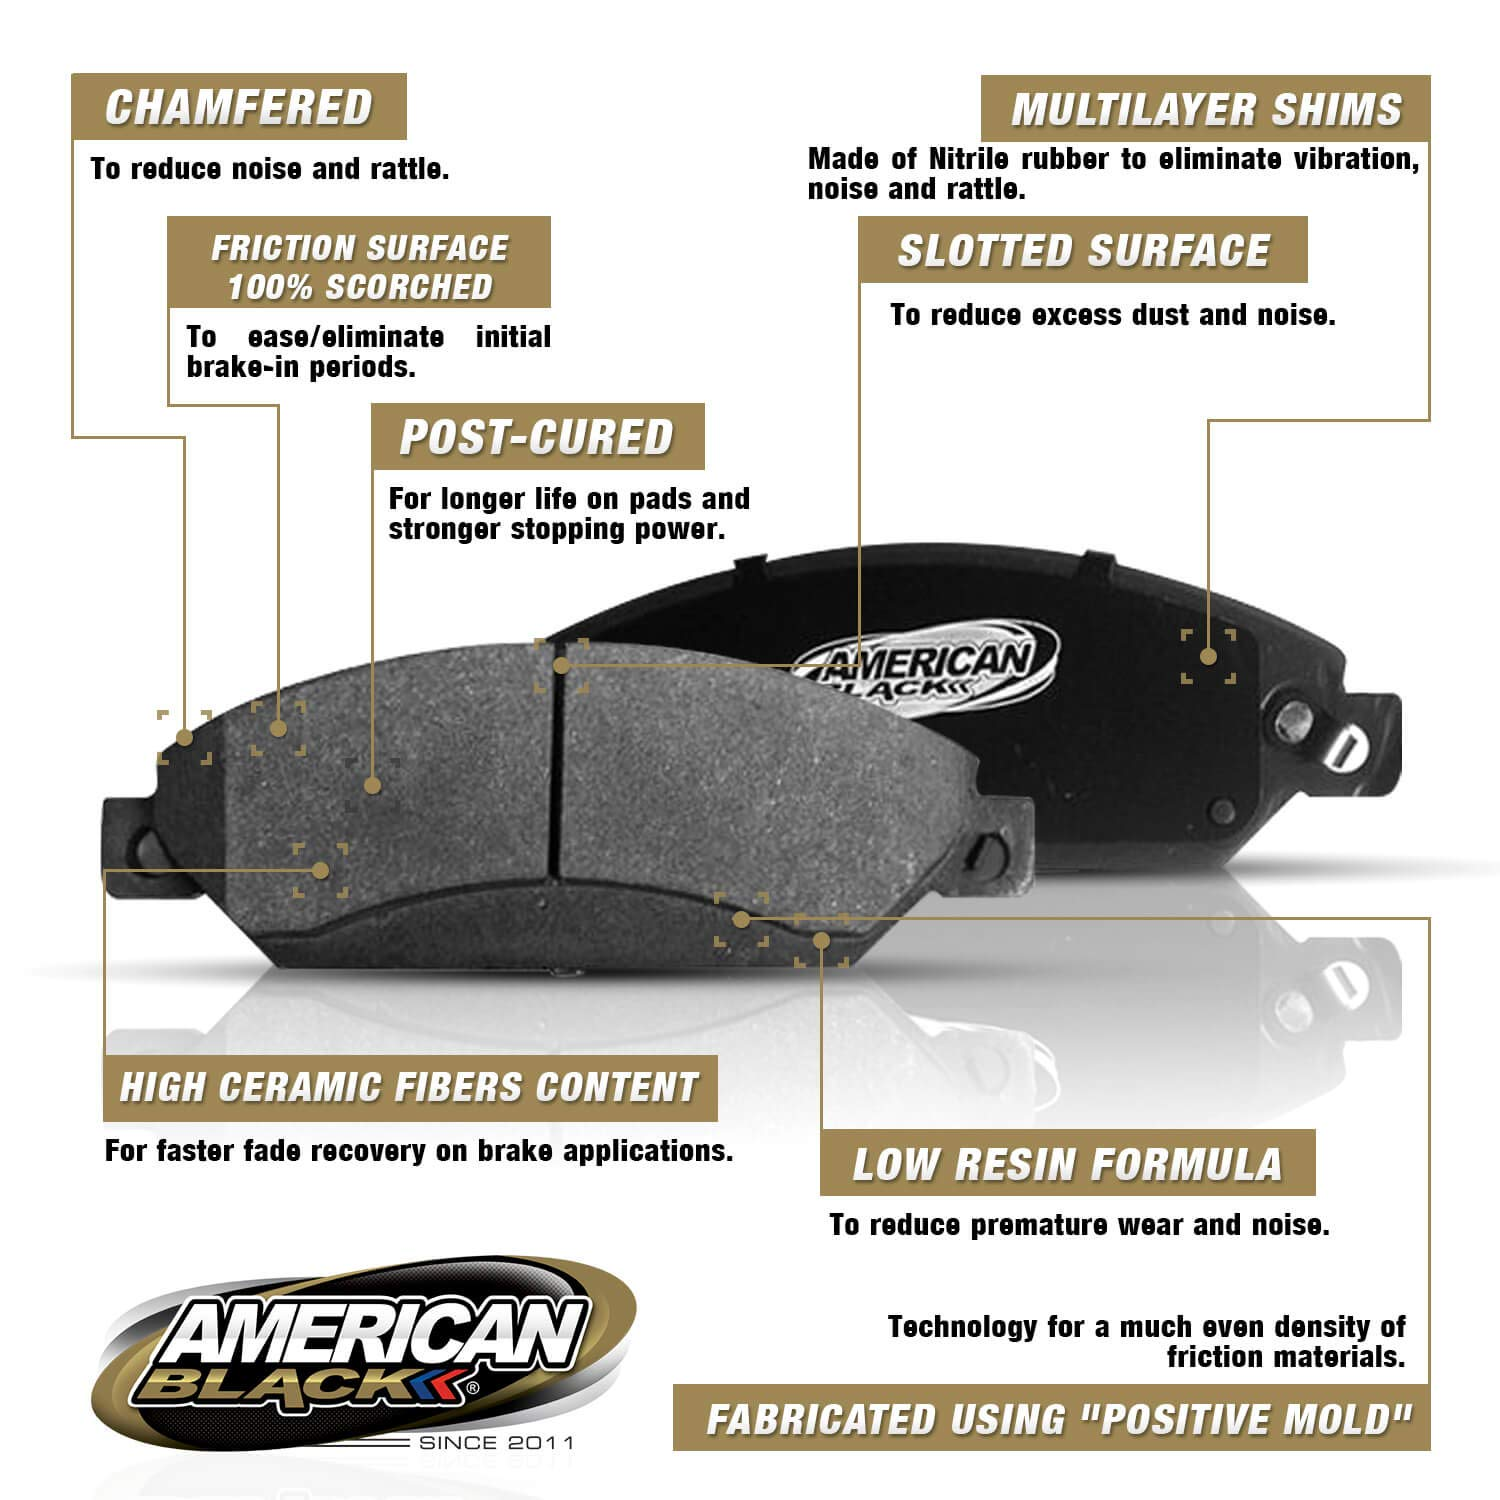 LTD American Black ABD503M Professional Semi-Metallic Front Disc Brake Pad Set Compatible With Integra Legend NSX Accord CR-V Odyssey Oasis /& Others QUIET and DUST FREE LAIWU HAITIAN AUTOMOBILE FITTING CO Perfect fit OE Premium Quality